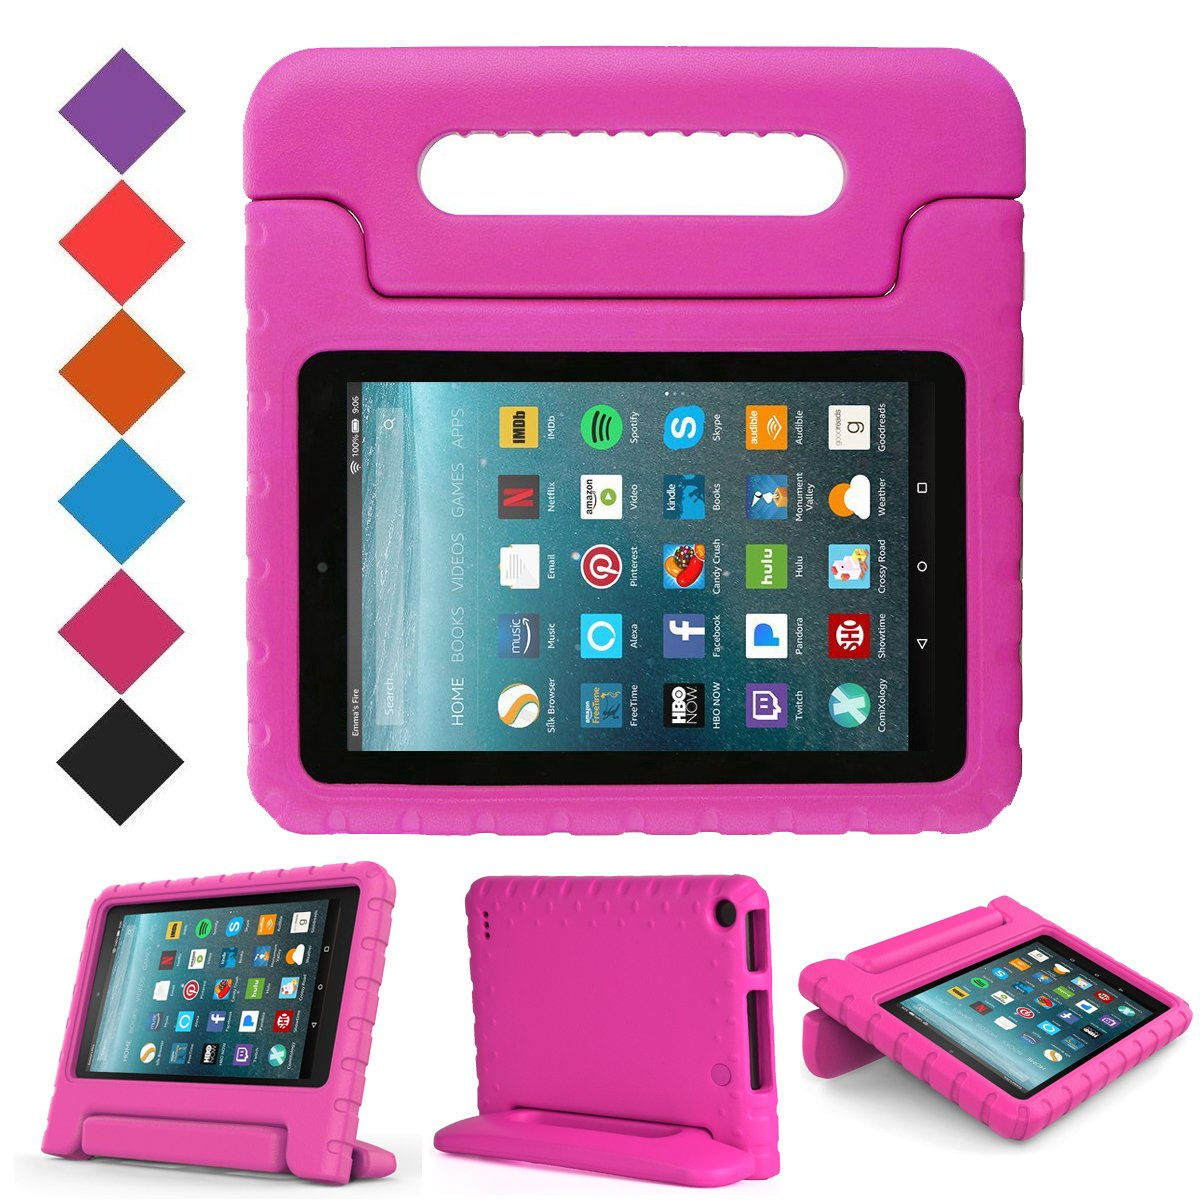 BMOUO Case for All New Amazon Fire 7 2017 - Light Weight Shock Proof Handle Kid-Proof Cover Kids Case for All New Fire 7 Tablet (7th Generation, 2017 Release), Rose